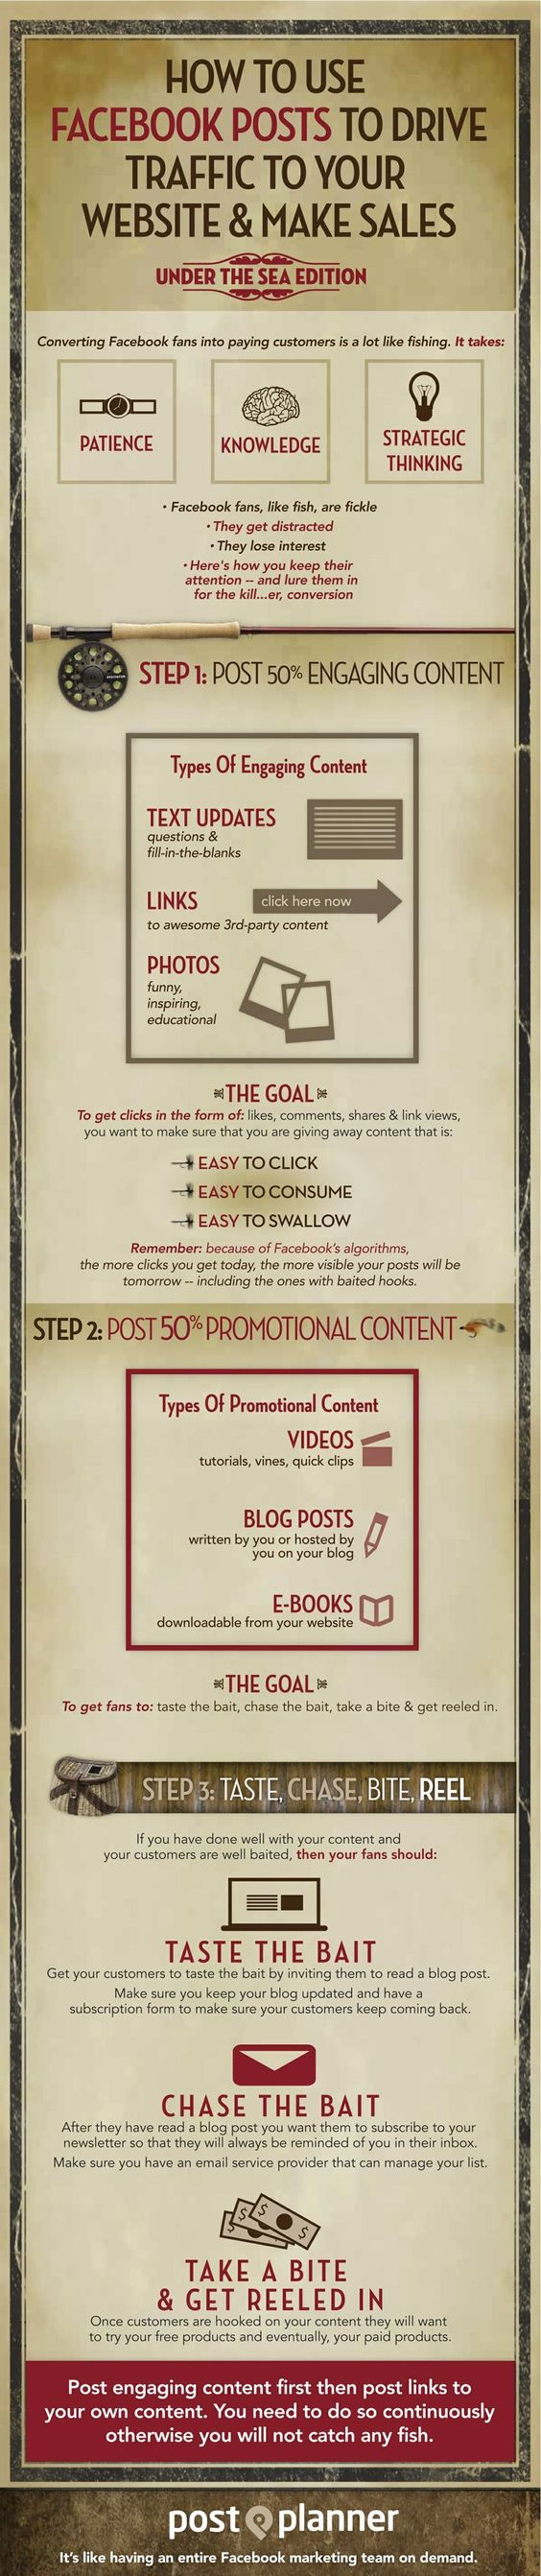 How To Use #Facebook to Generate More Traffic #infographic #socialmedia